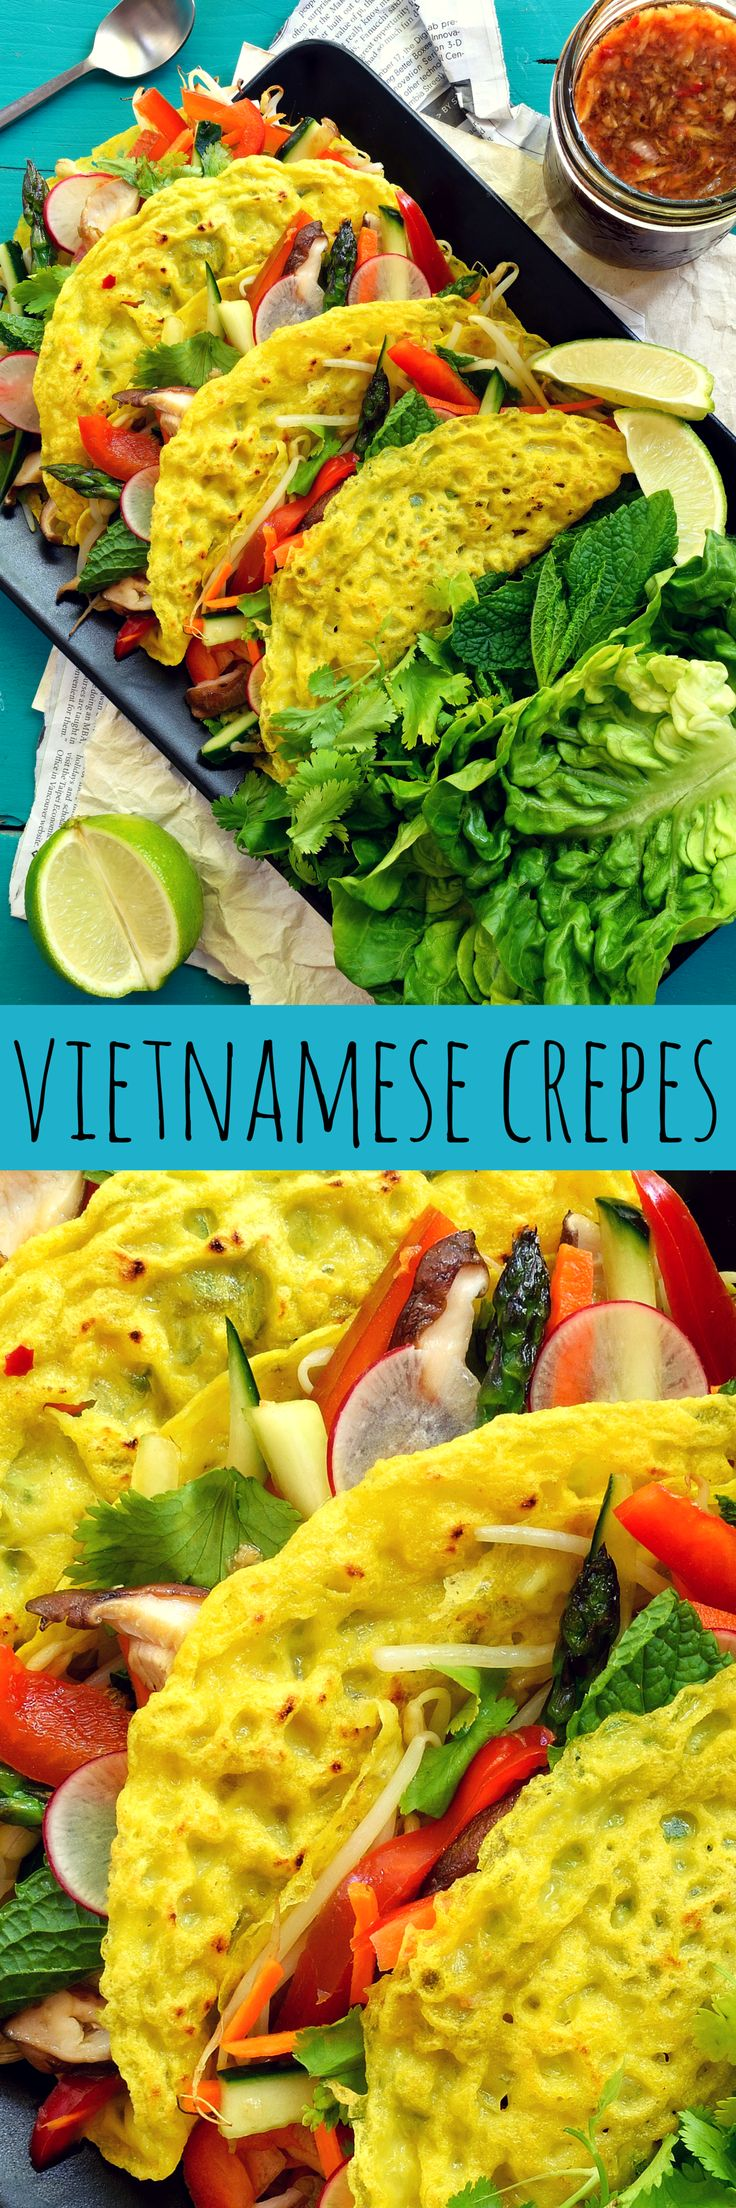 Vegan banh xeo are crispy, coconut-y rice flour pancakes stuffed with deliciously crunchy raw veggies and fresh herbs served along with the typical sweet, sour, spicy, salty dipping sauce.